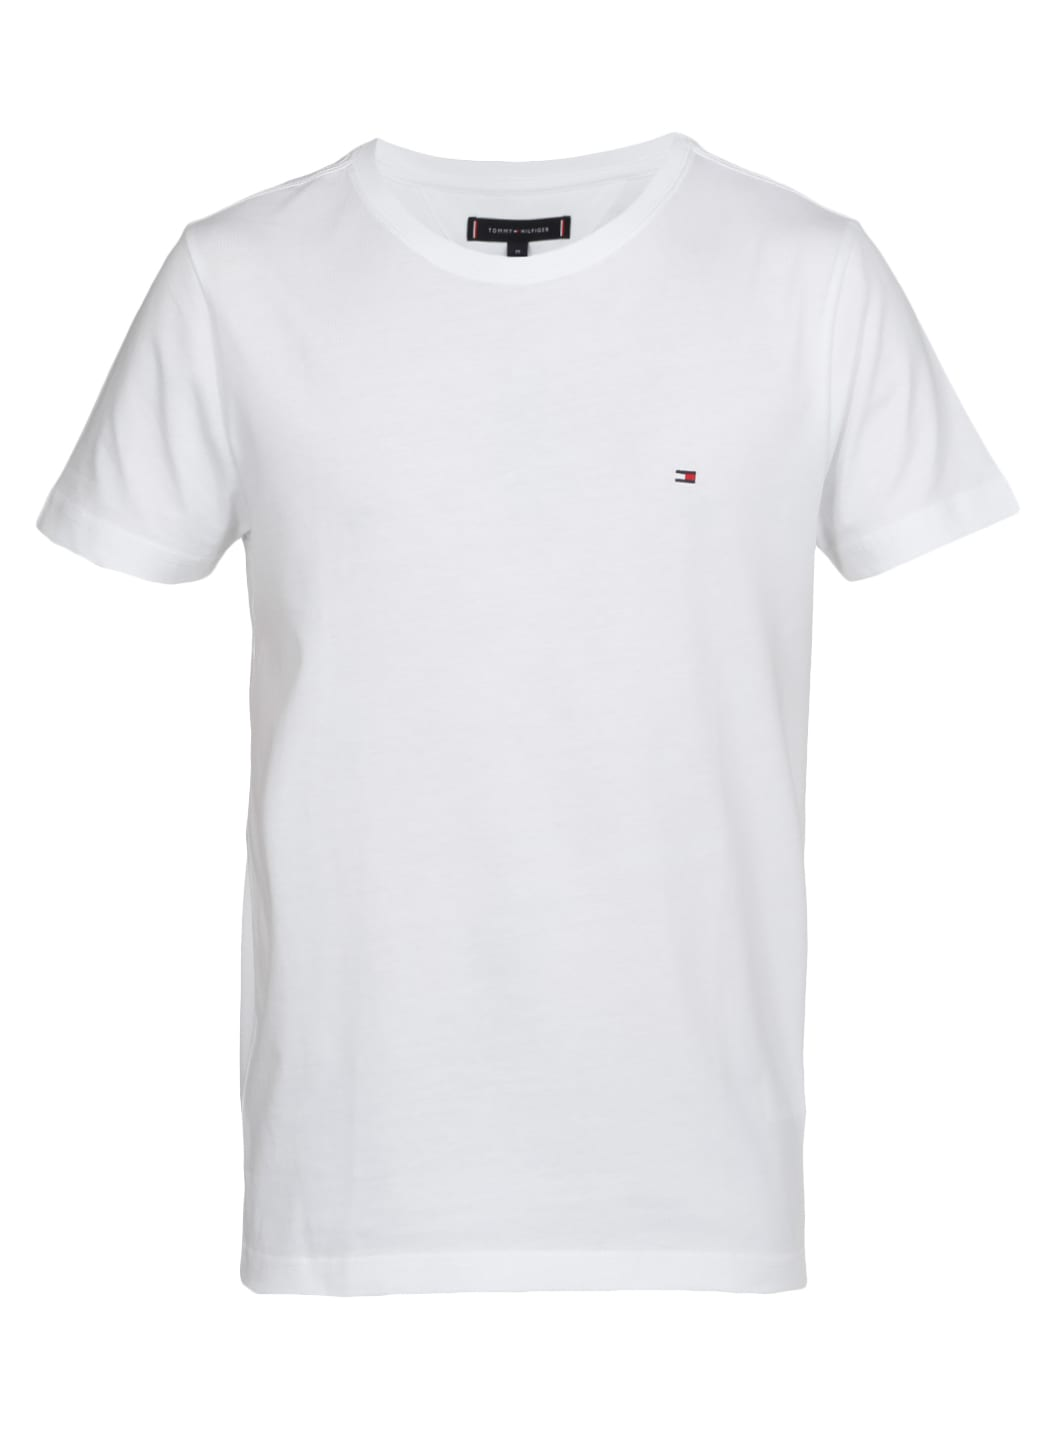 Tommy Hilfiger T-shirt With Logo In White